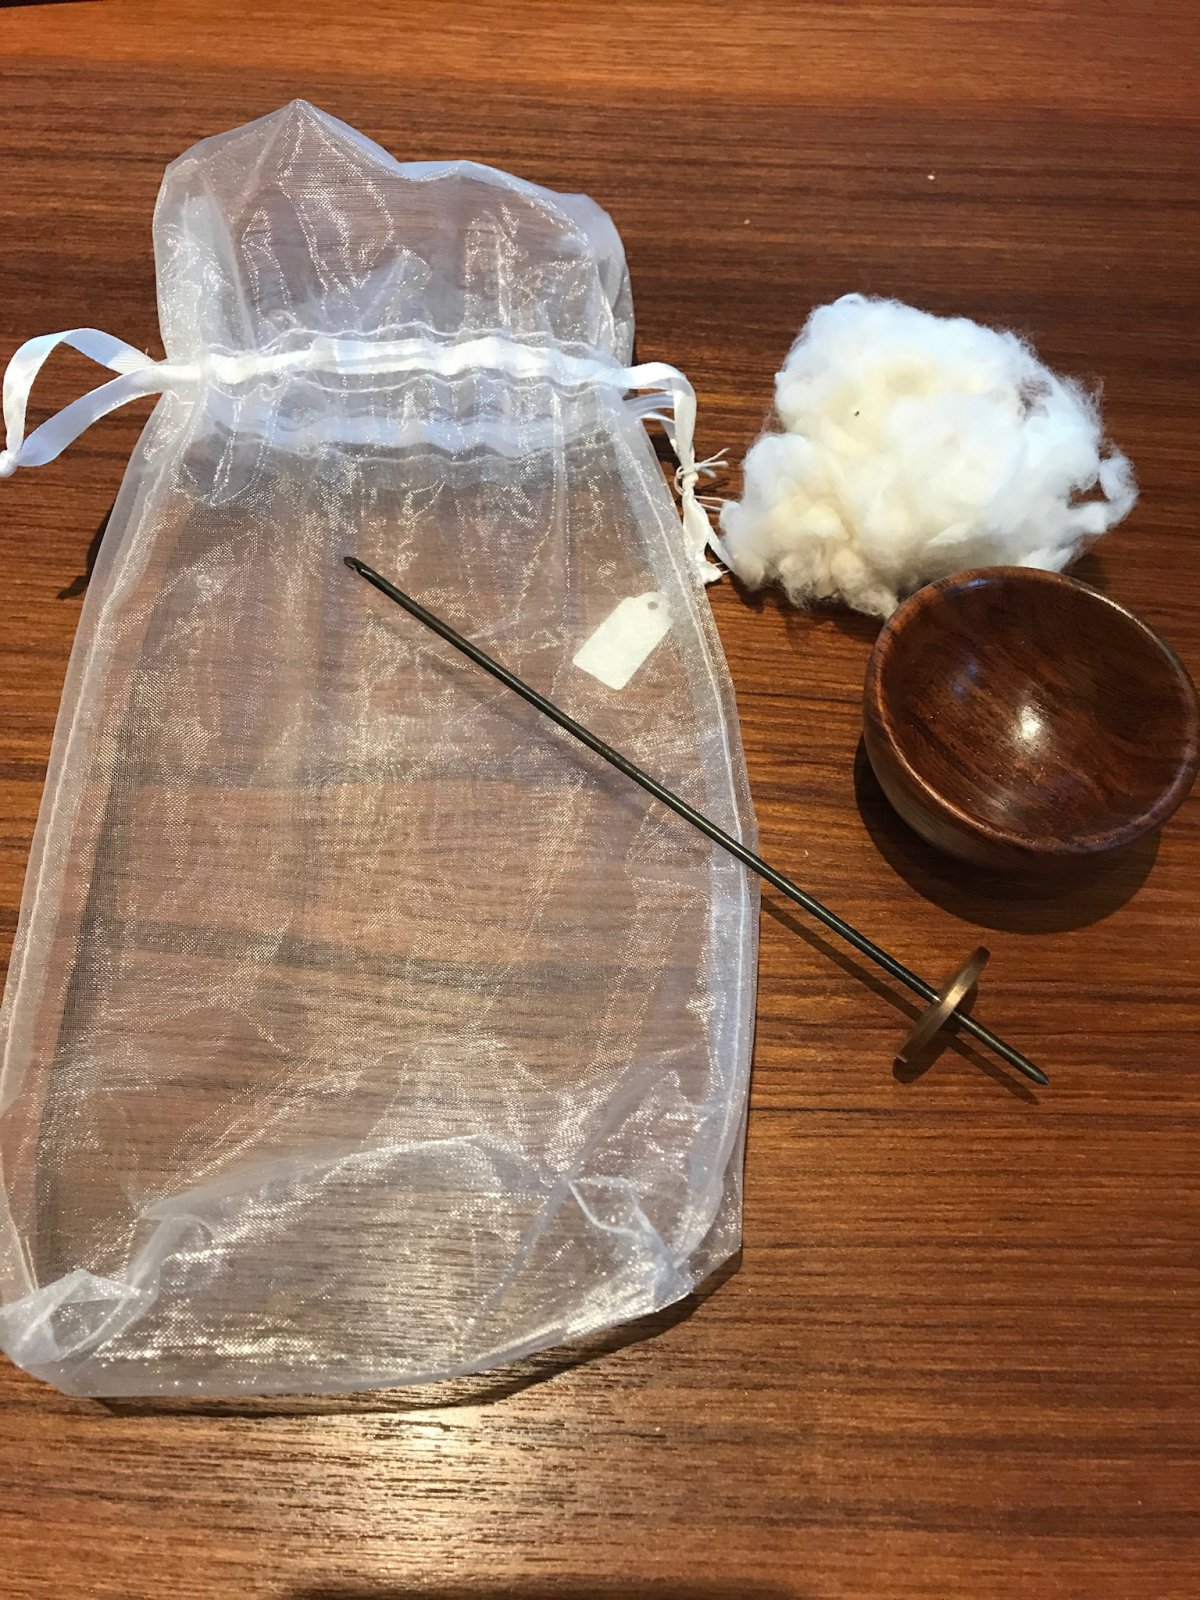 Tahkli Supported Spindle and Cotton